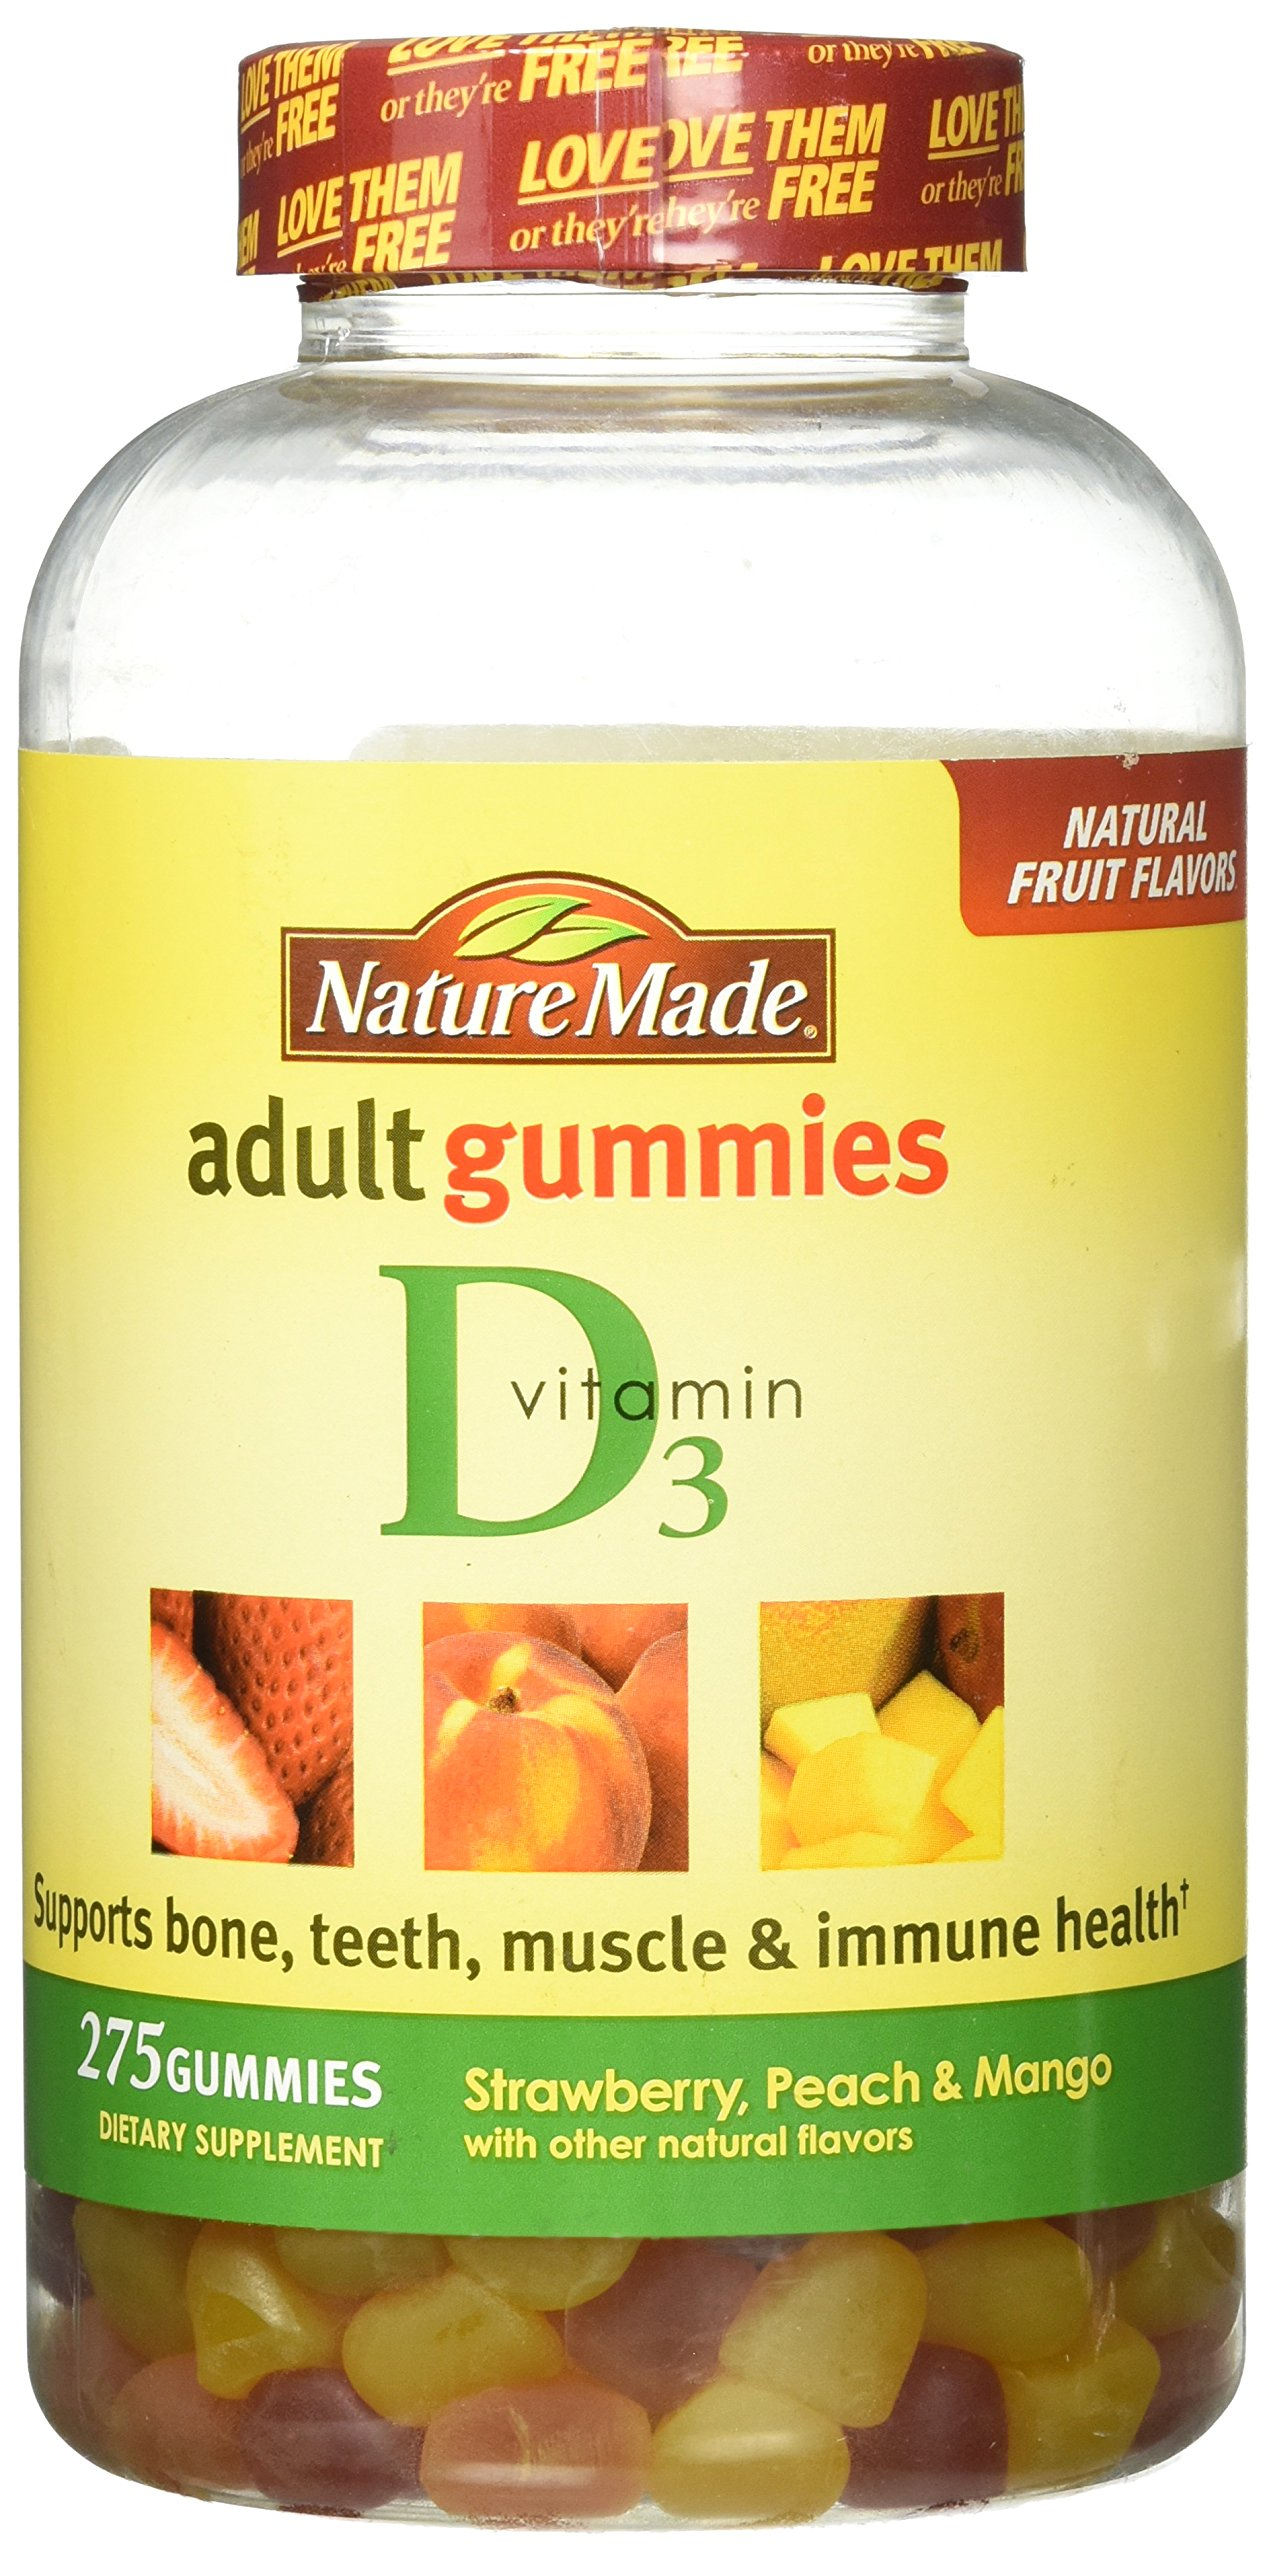 Nature Made Vitamin D3  Adult Gummies - 275 Gummies